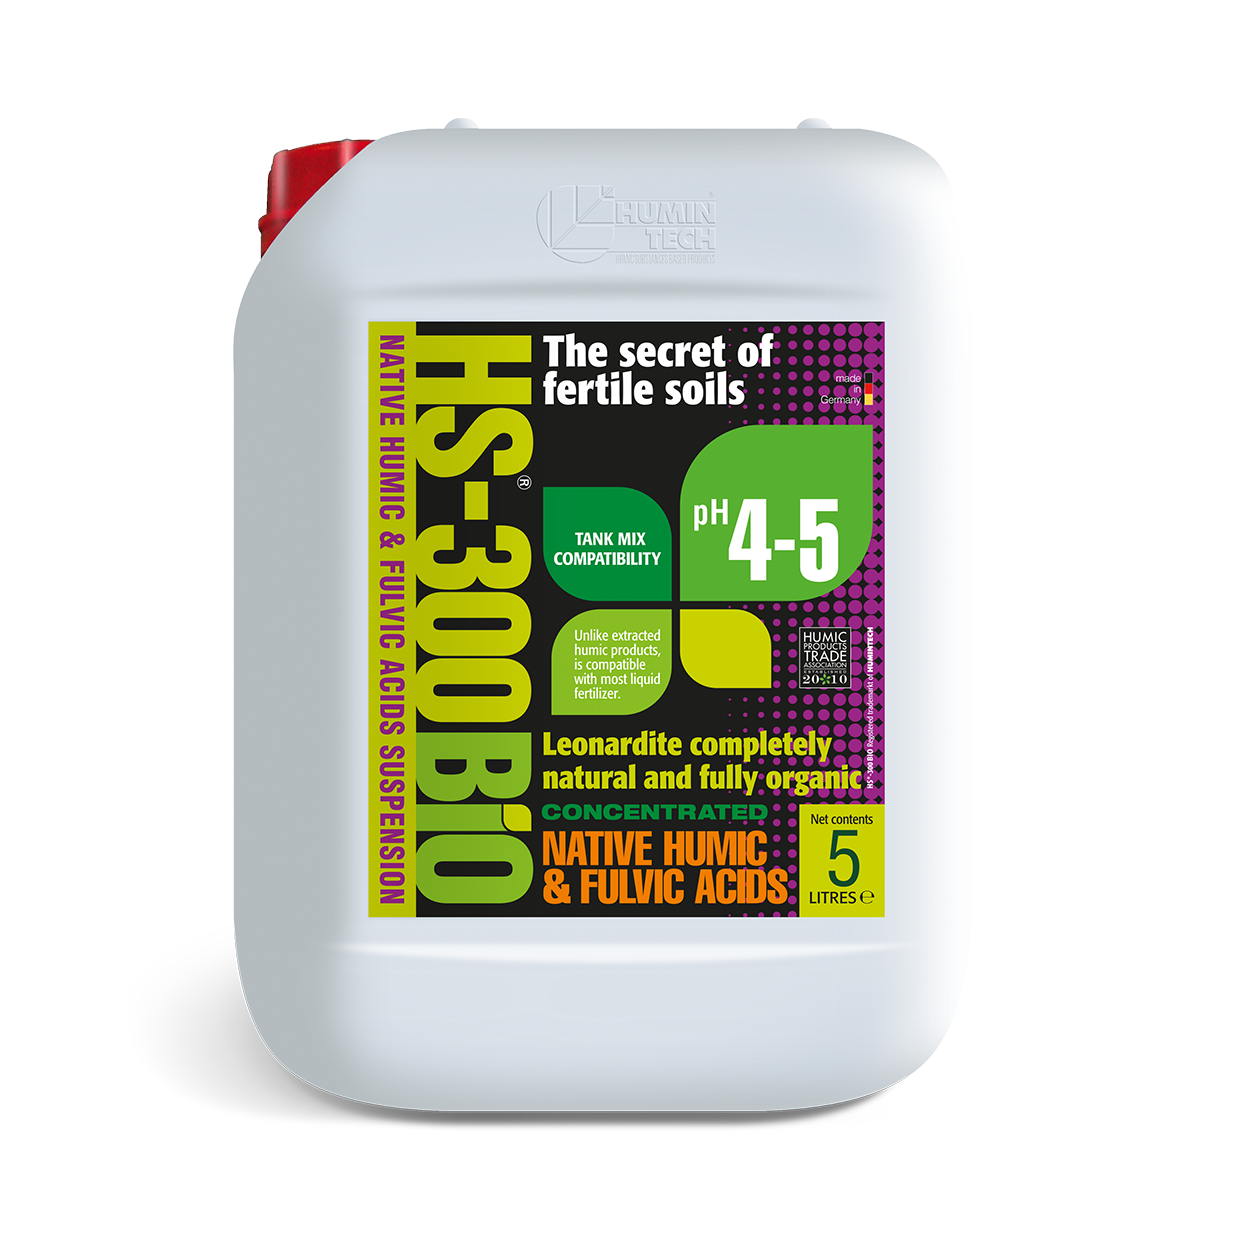 HS - 300BIO Native Humic Acid Suspension Organic Soil Conditioner 5 L